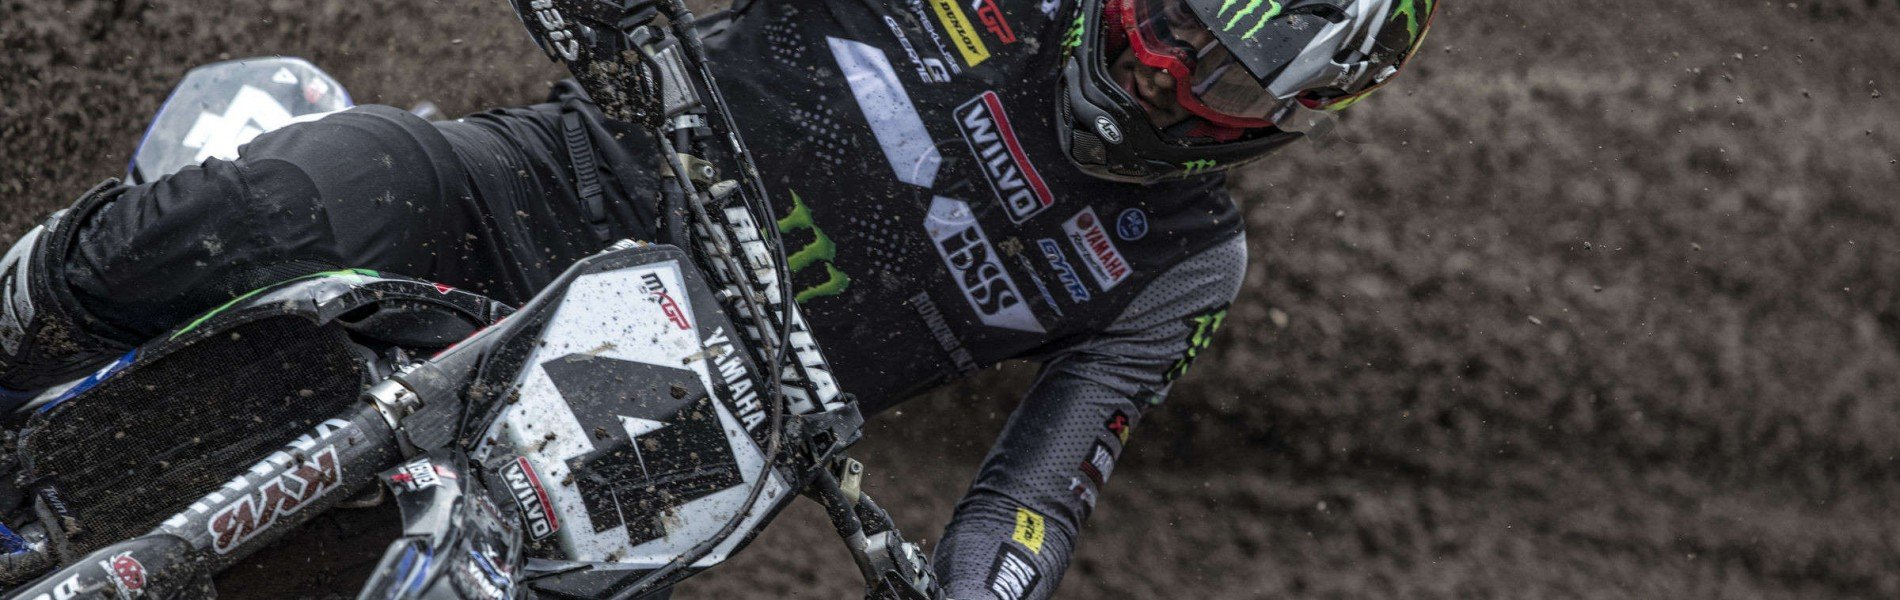 Arnaud Tonus in action at 2019 MXGP Trentino